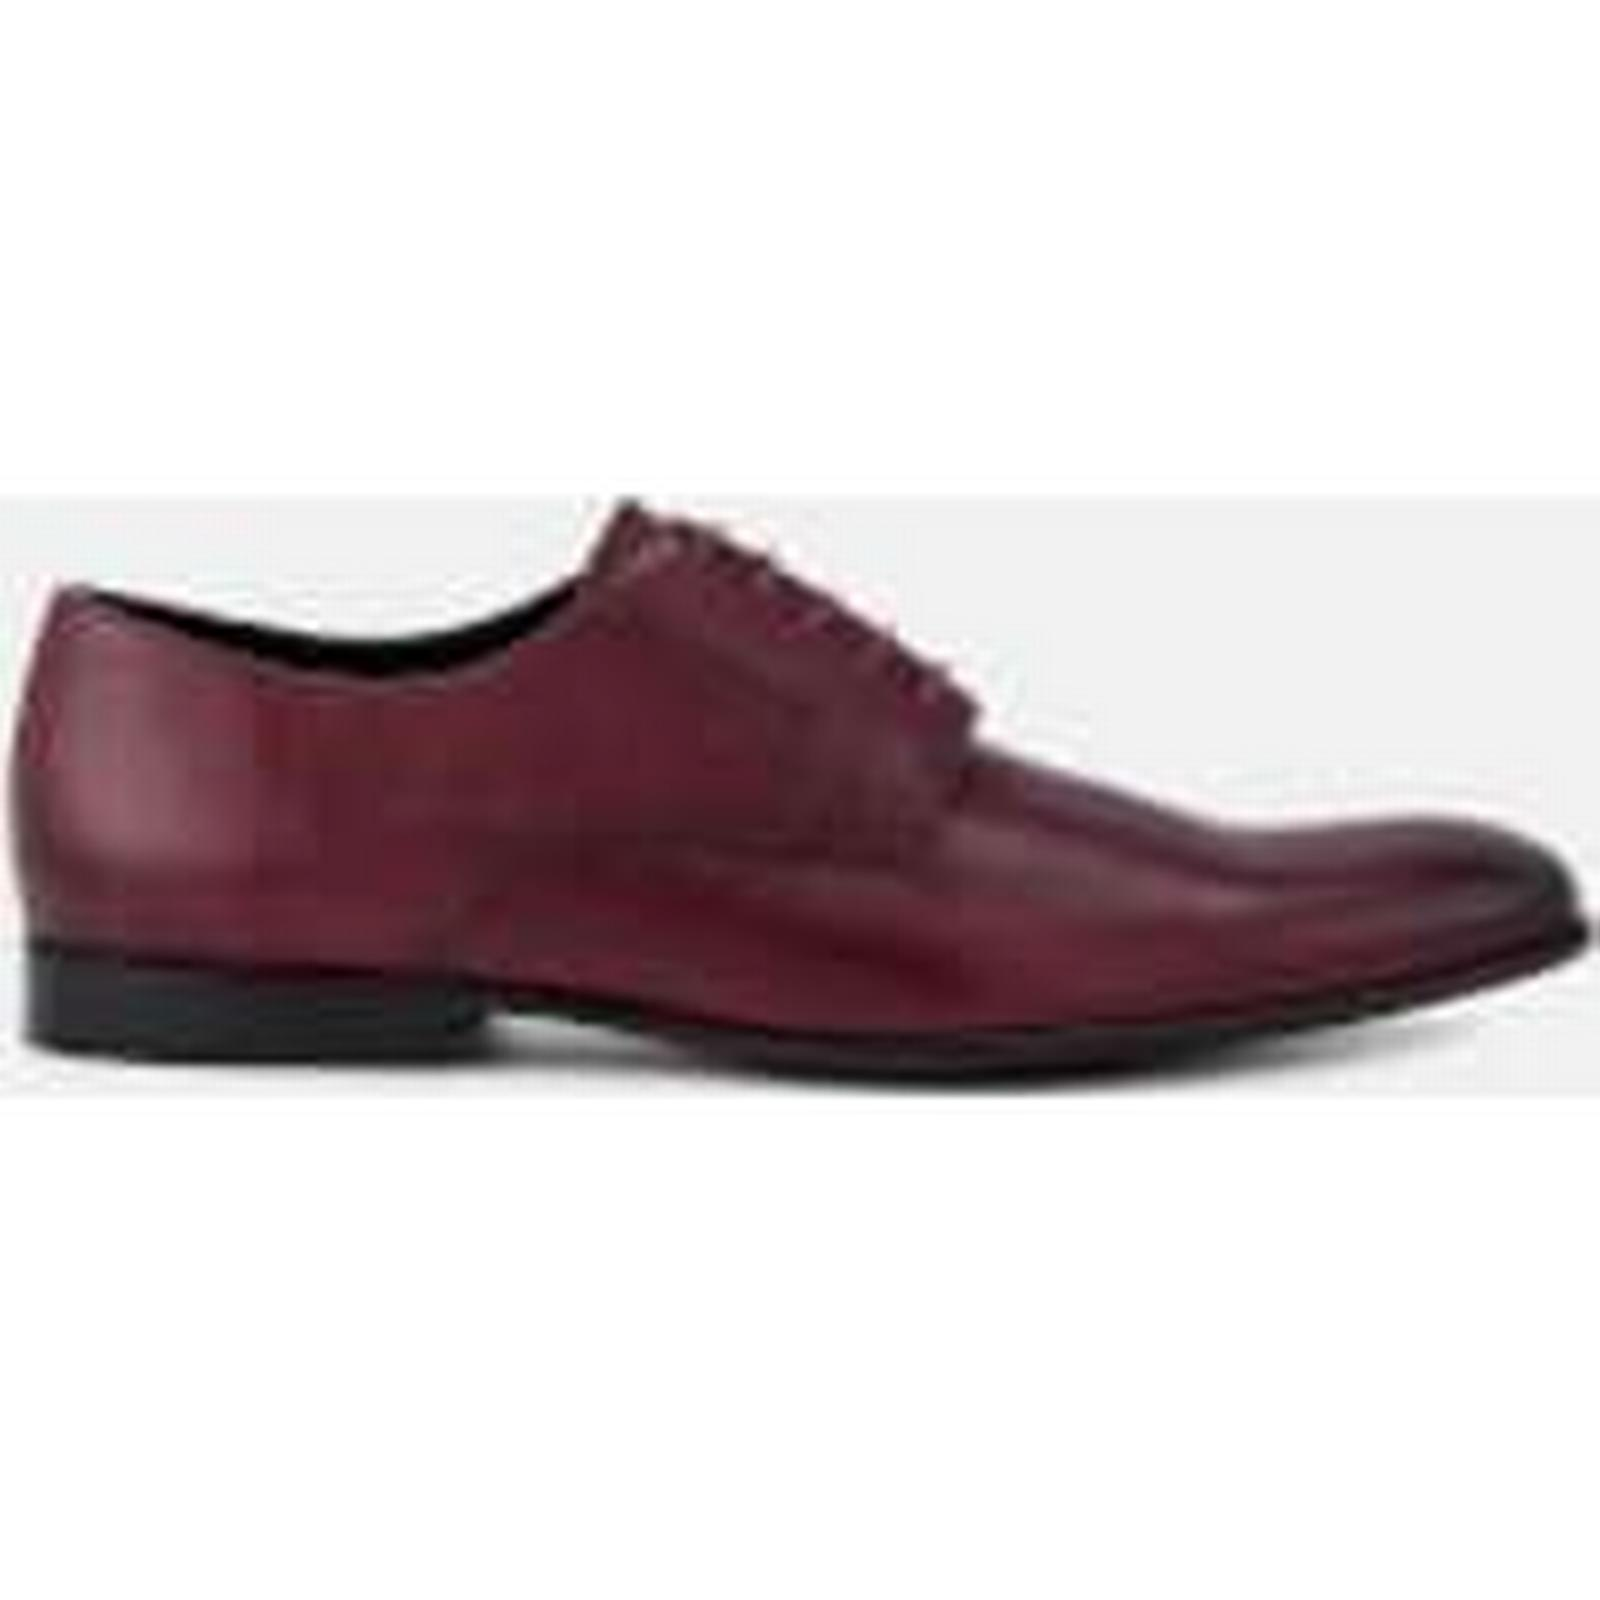 PS by Paul Smith Oxford Men's Gould Burnished Leather Oxford Smith Shoes - Burgundy - UK 7 - Burgundy 52931c